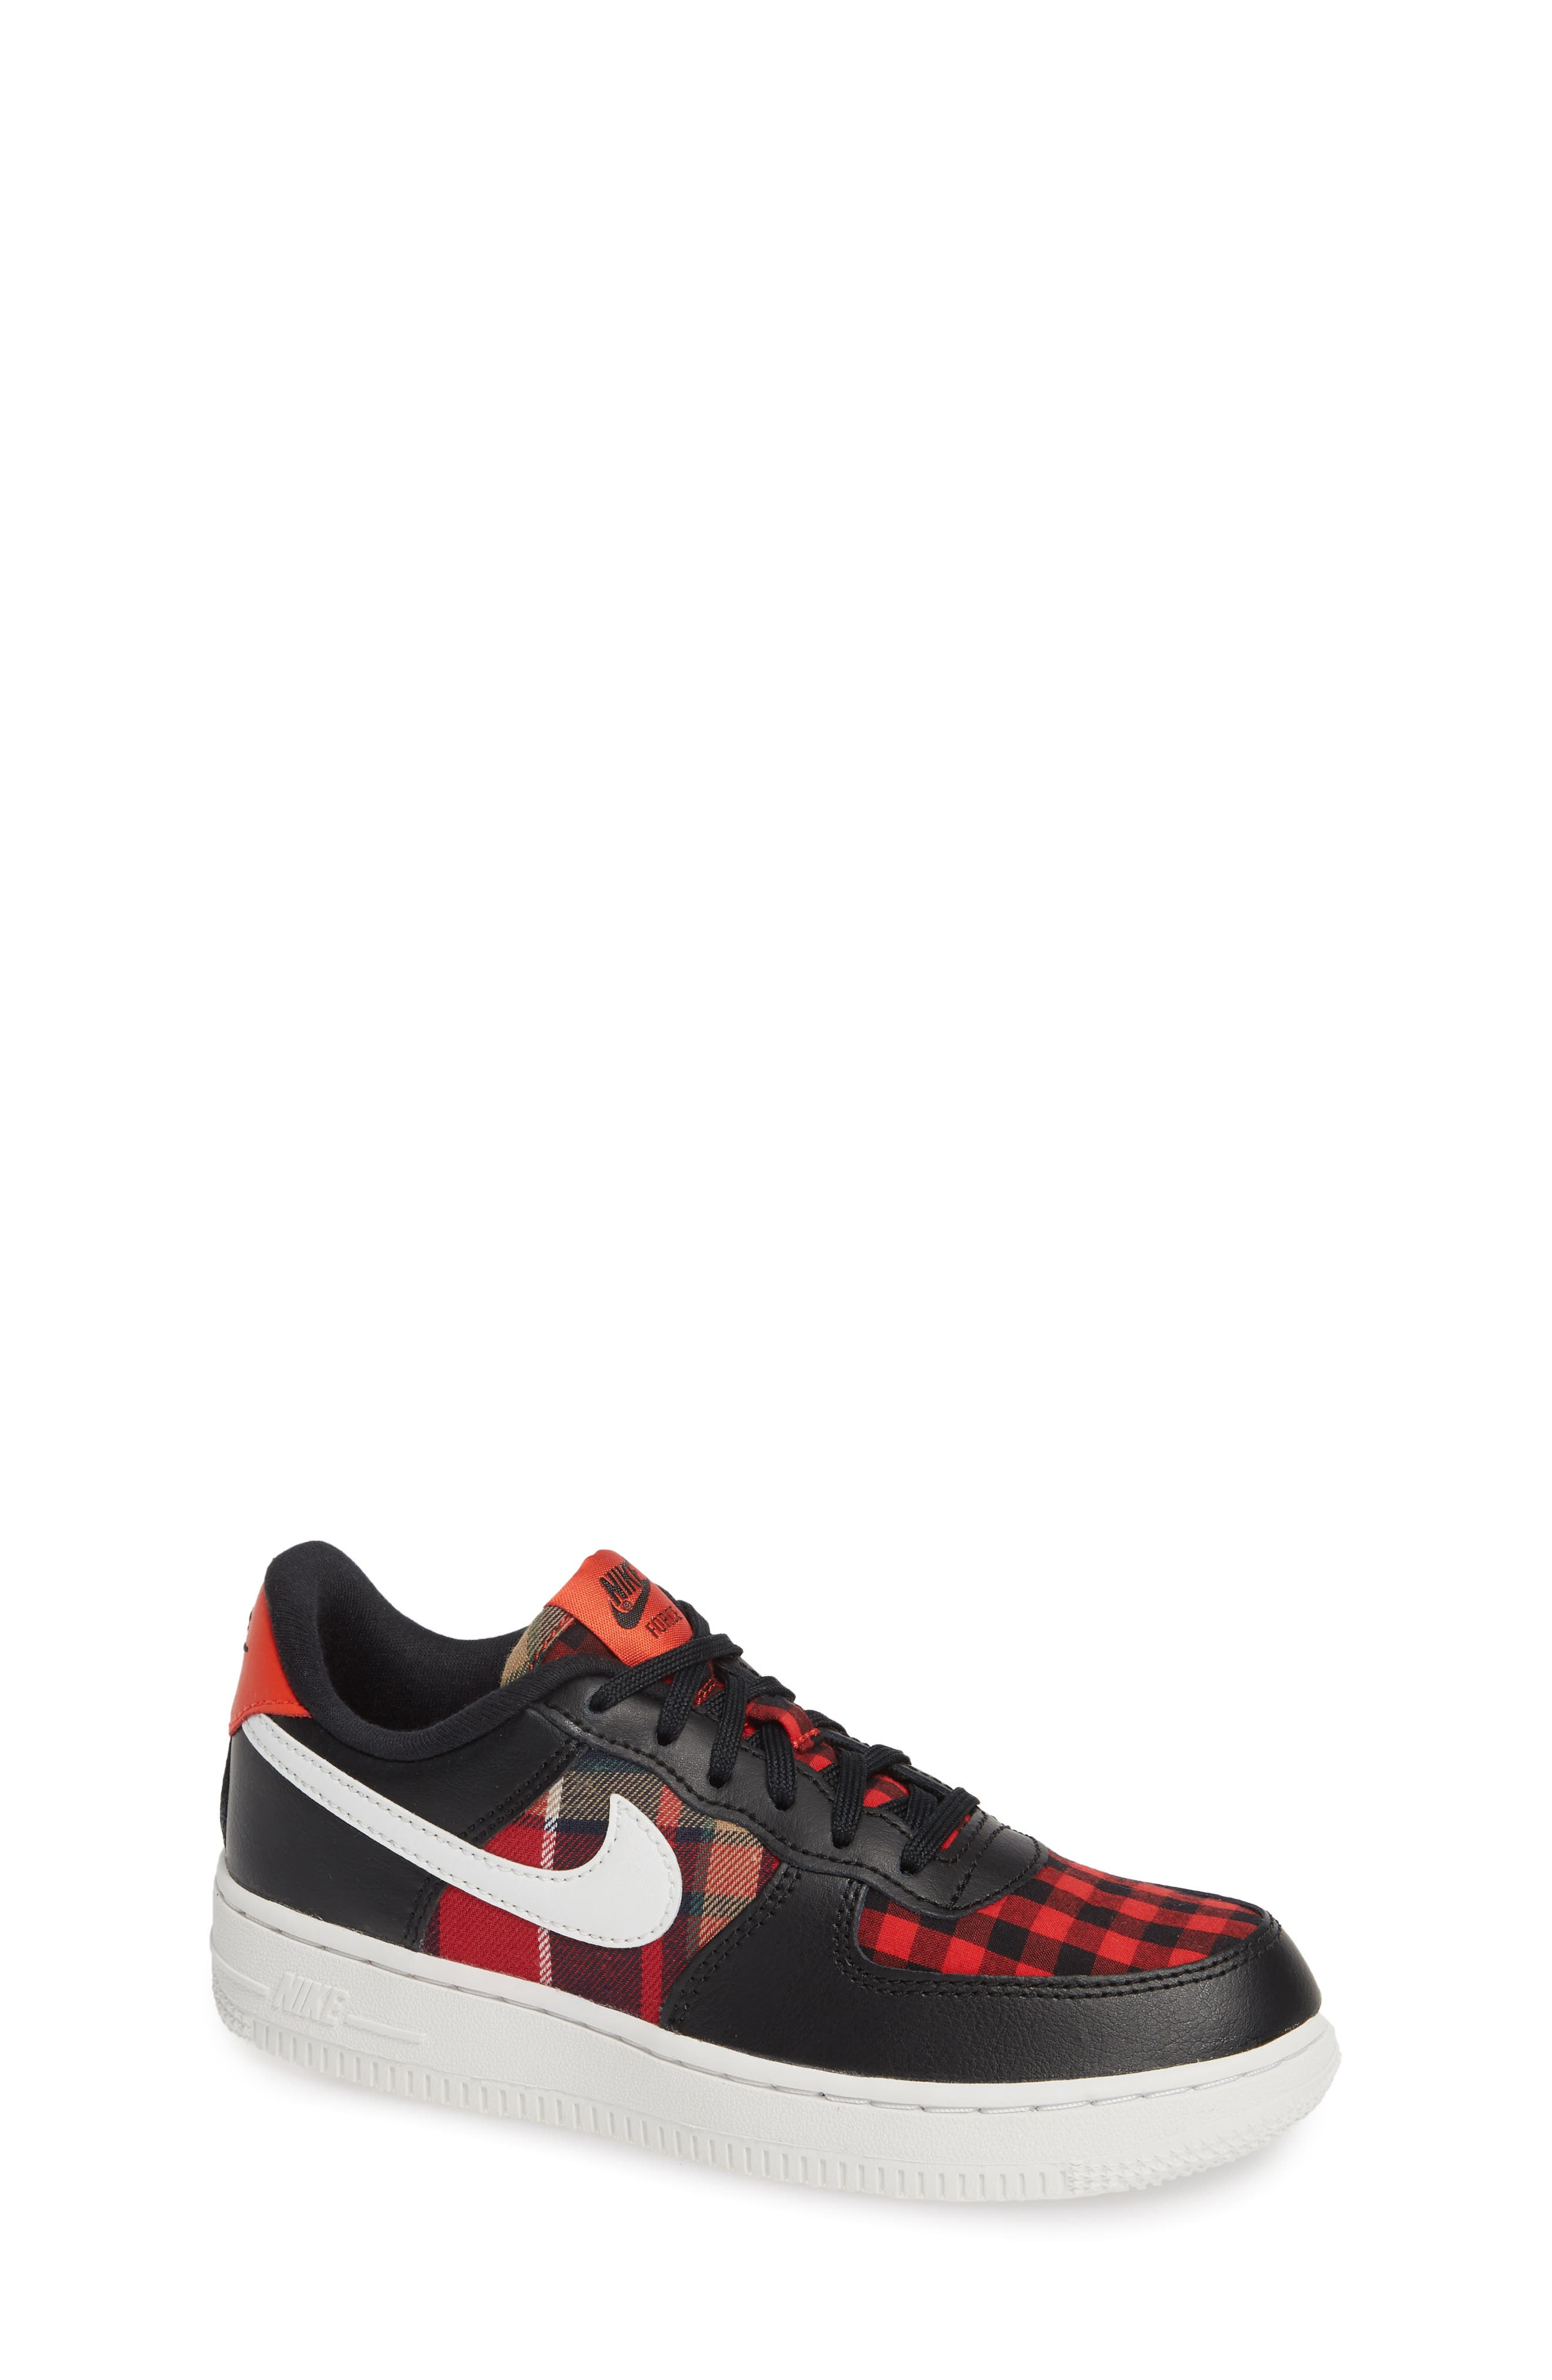 Air Force 1 LV8 Sneaker,                             Main thumbnail 1, color,                             BLACK SUMMIT WHITE RED